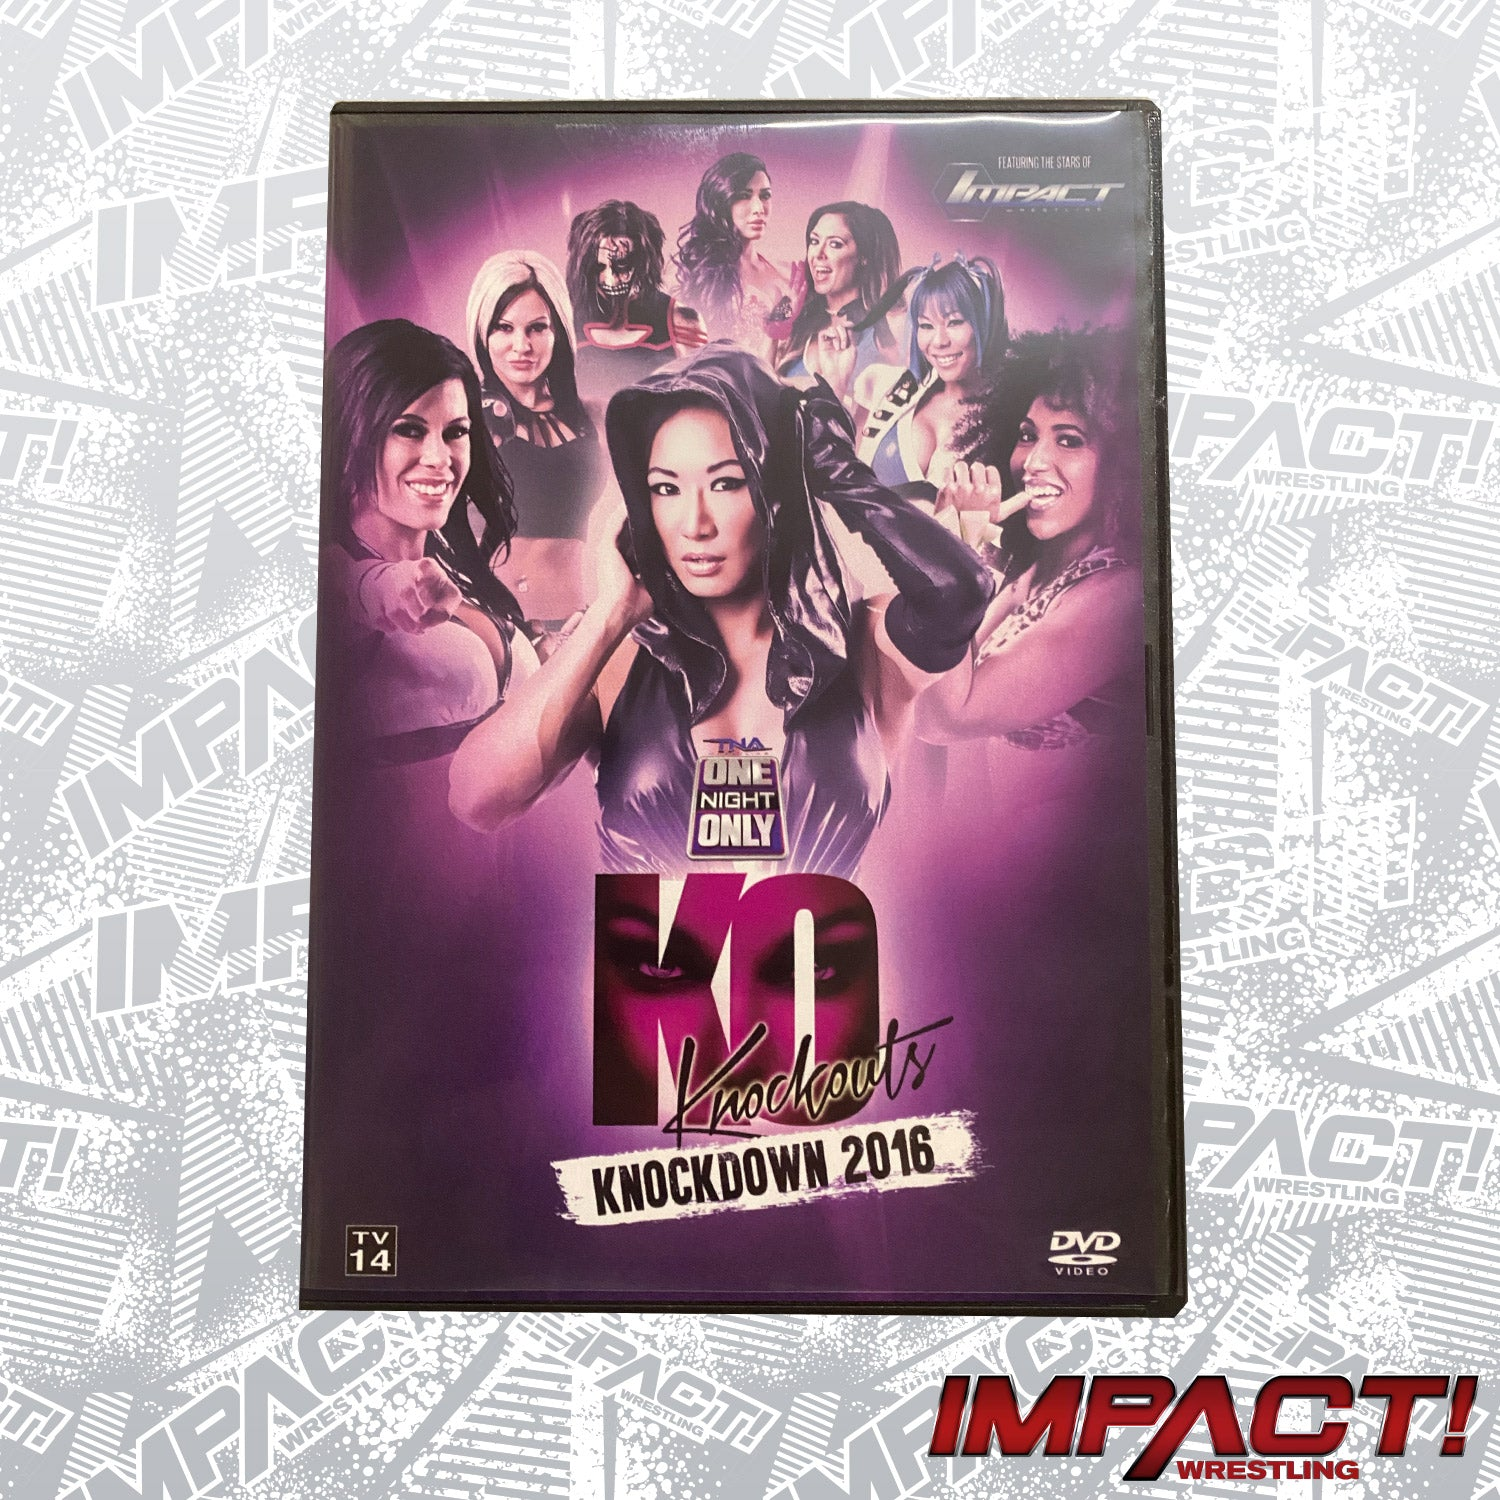 One Night Only: Knockouts Knockdown 2016 DVD